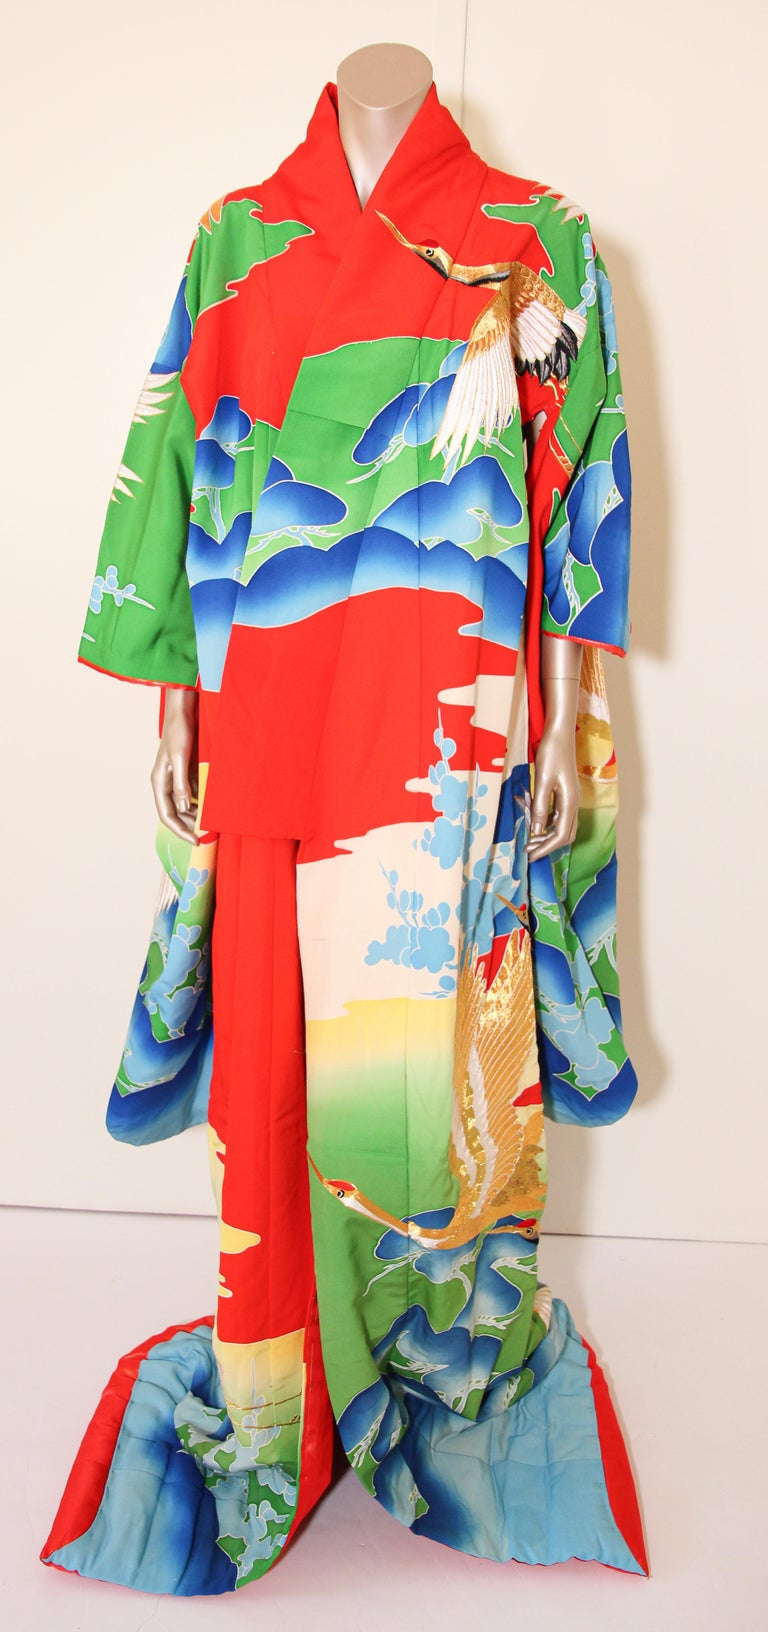 Brocade Vintage Collectable Japanese Ceremonial Kimono For Sale